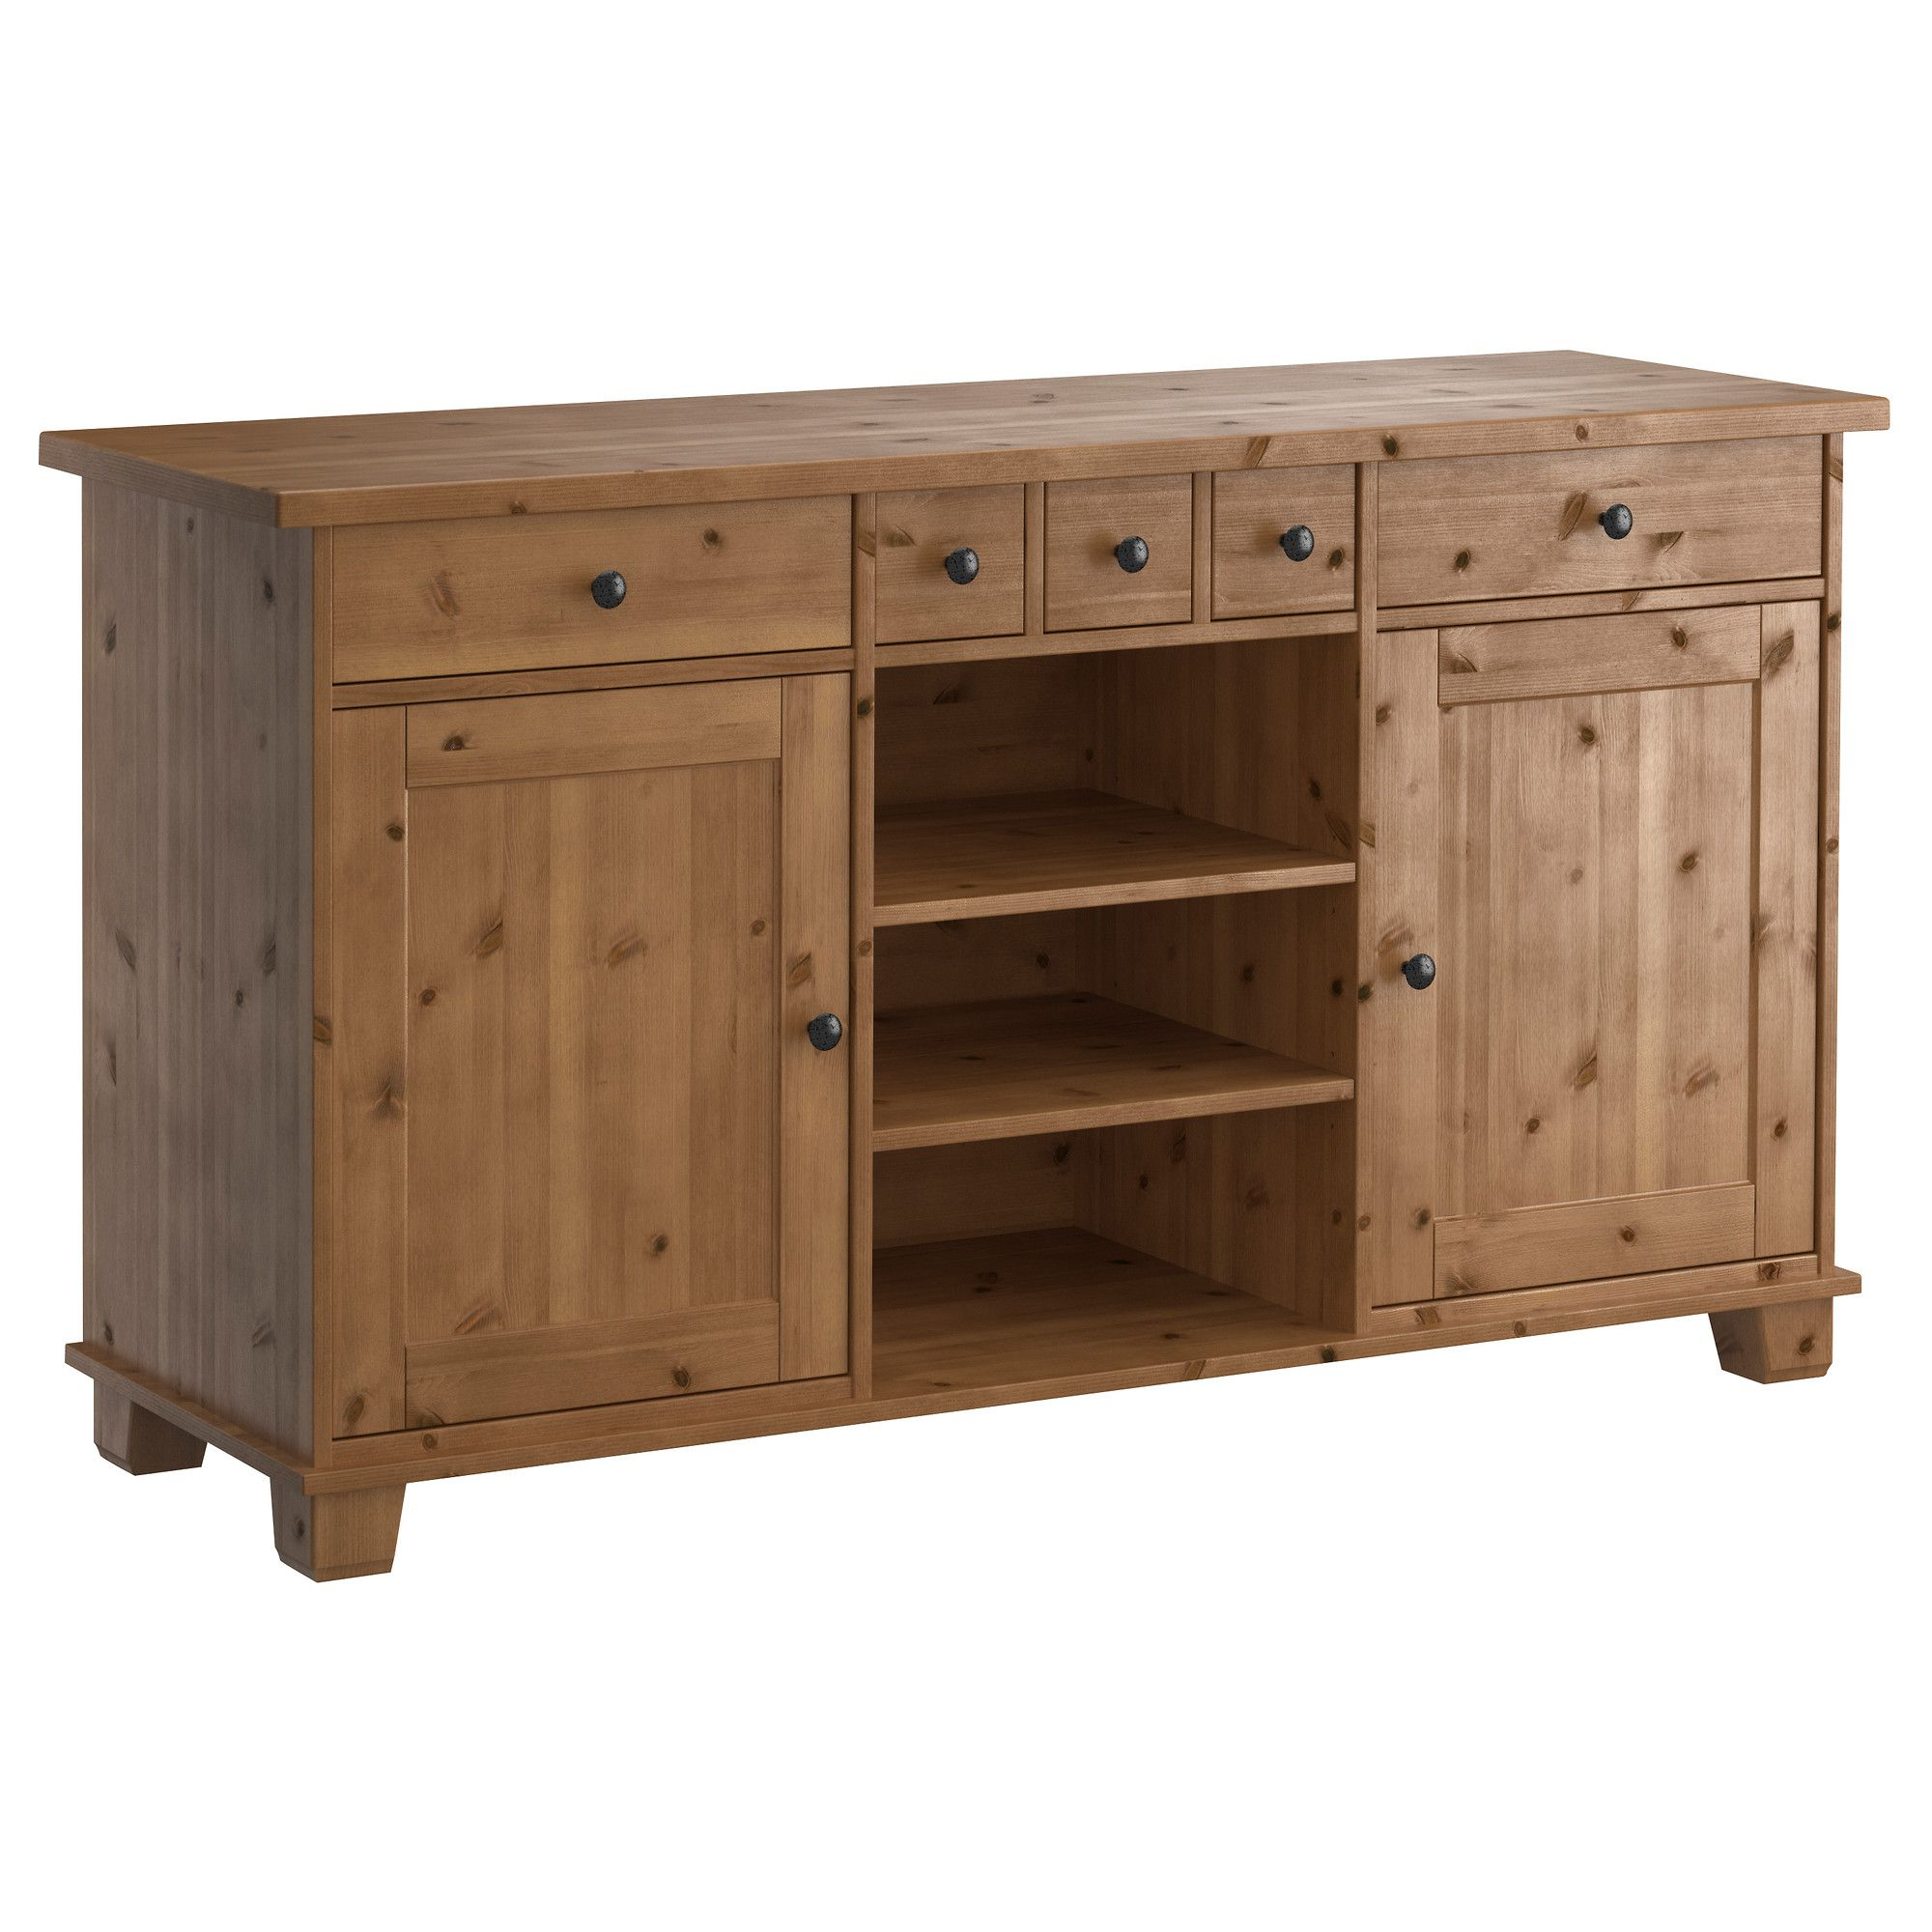 Shop For Furniture, Lighting, Home Accessories & More | Home Regarding Contemporary Wooden Buffets With One Side Door Storage Cabinets And Two Drawers (View 14 of 20)